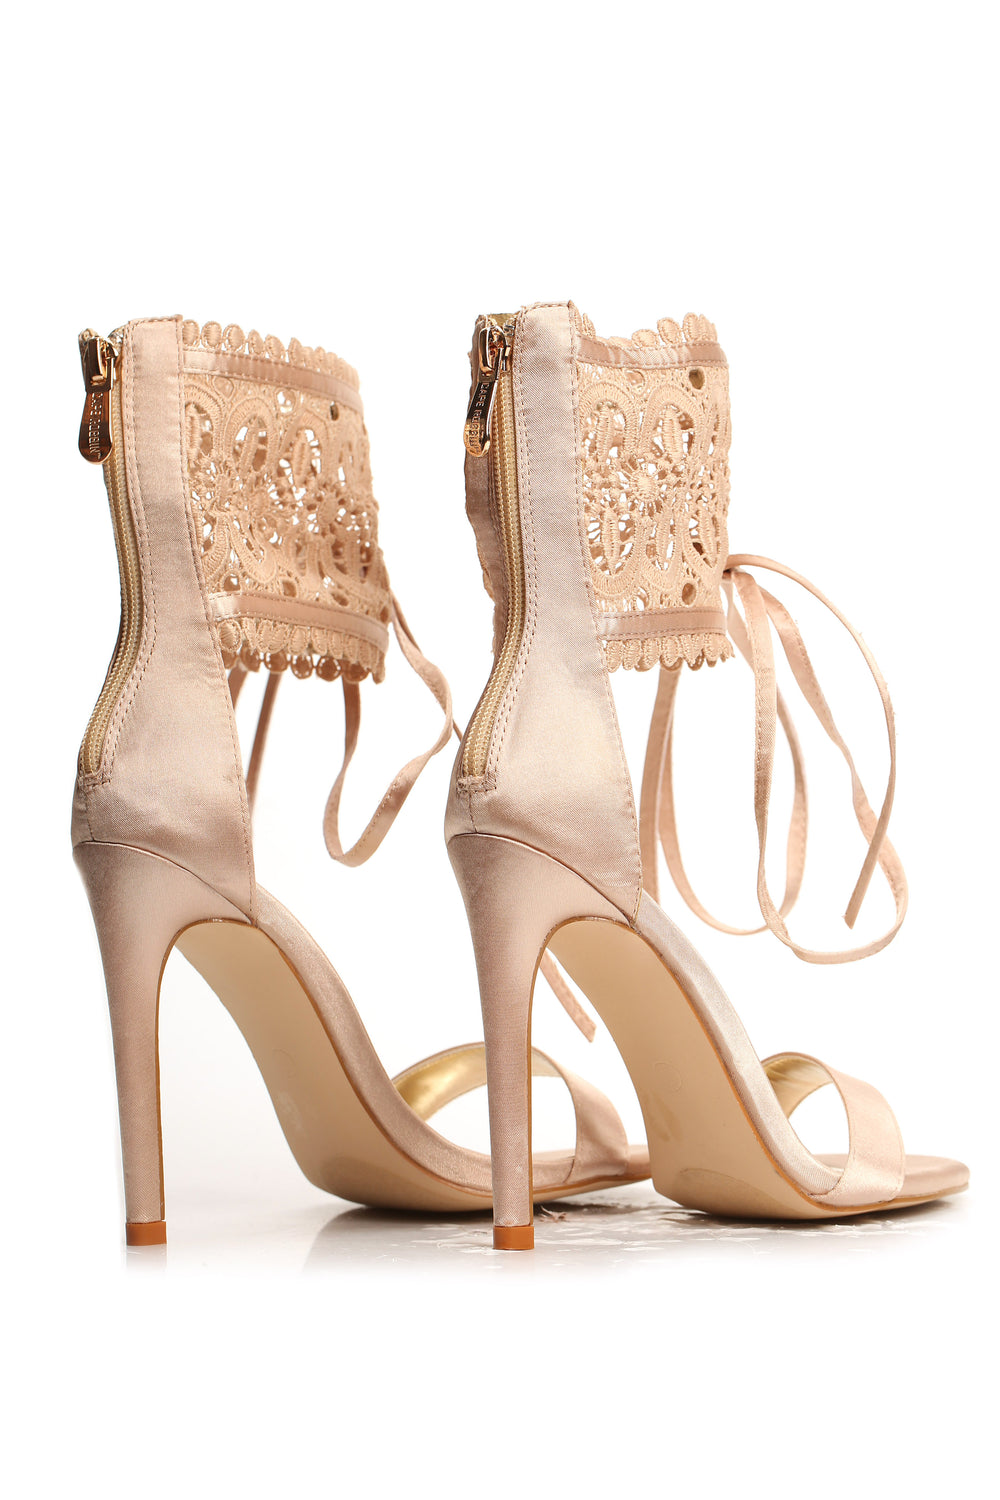 Leave It To Lace Heel - Champagne